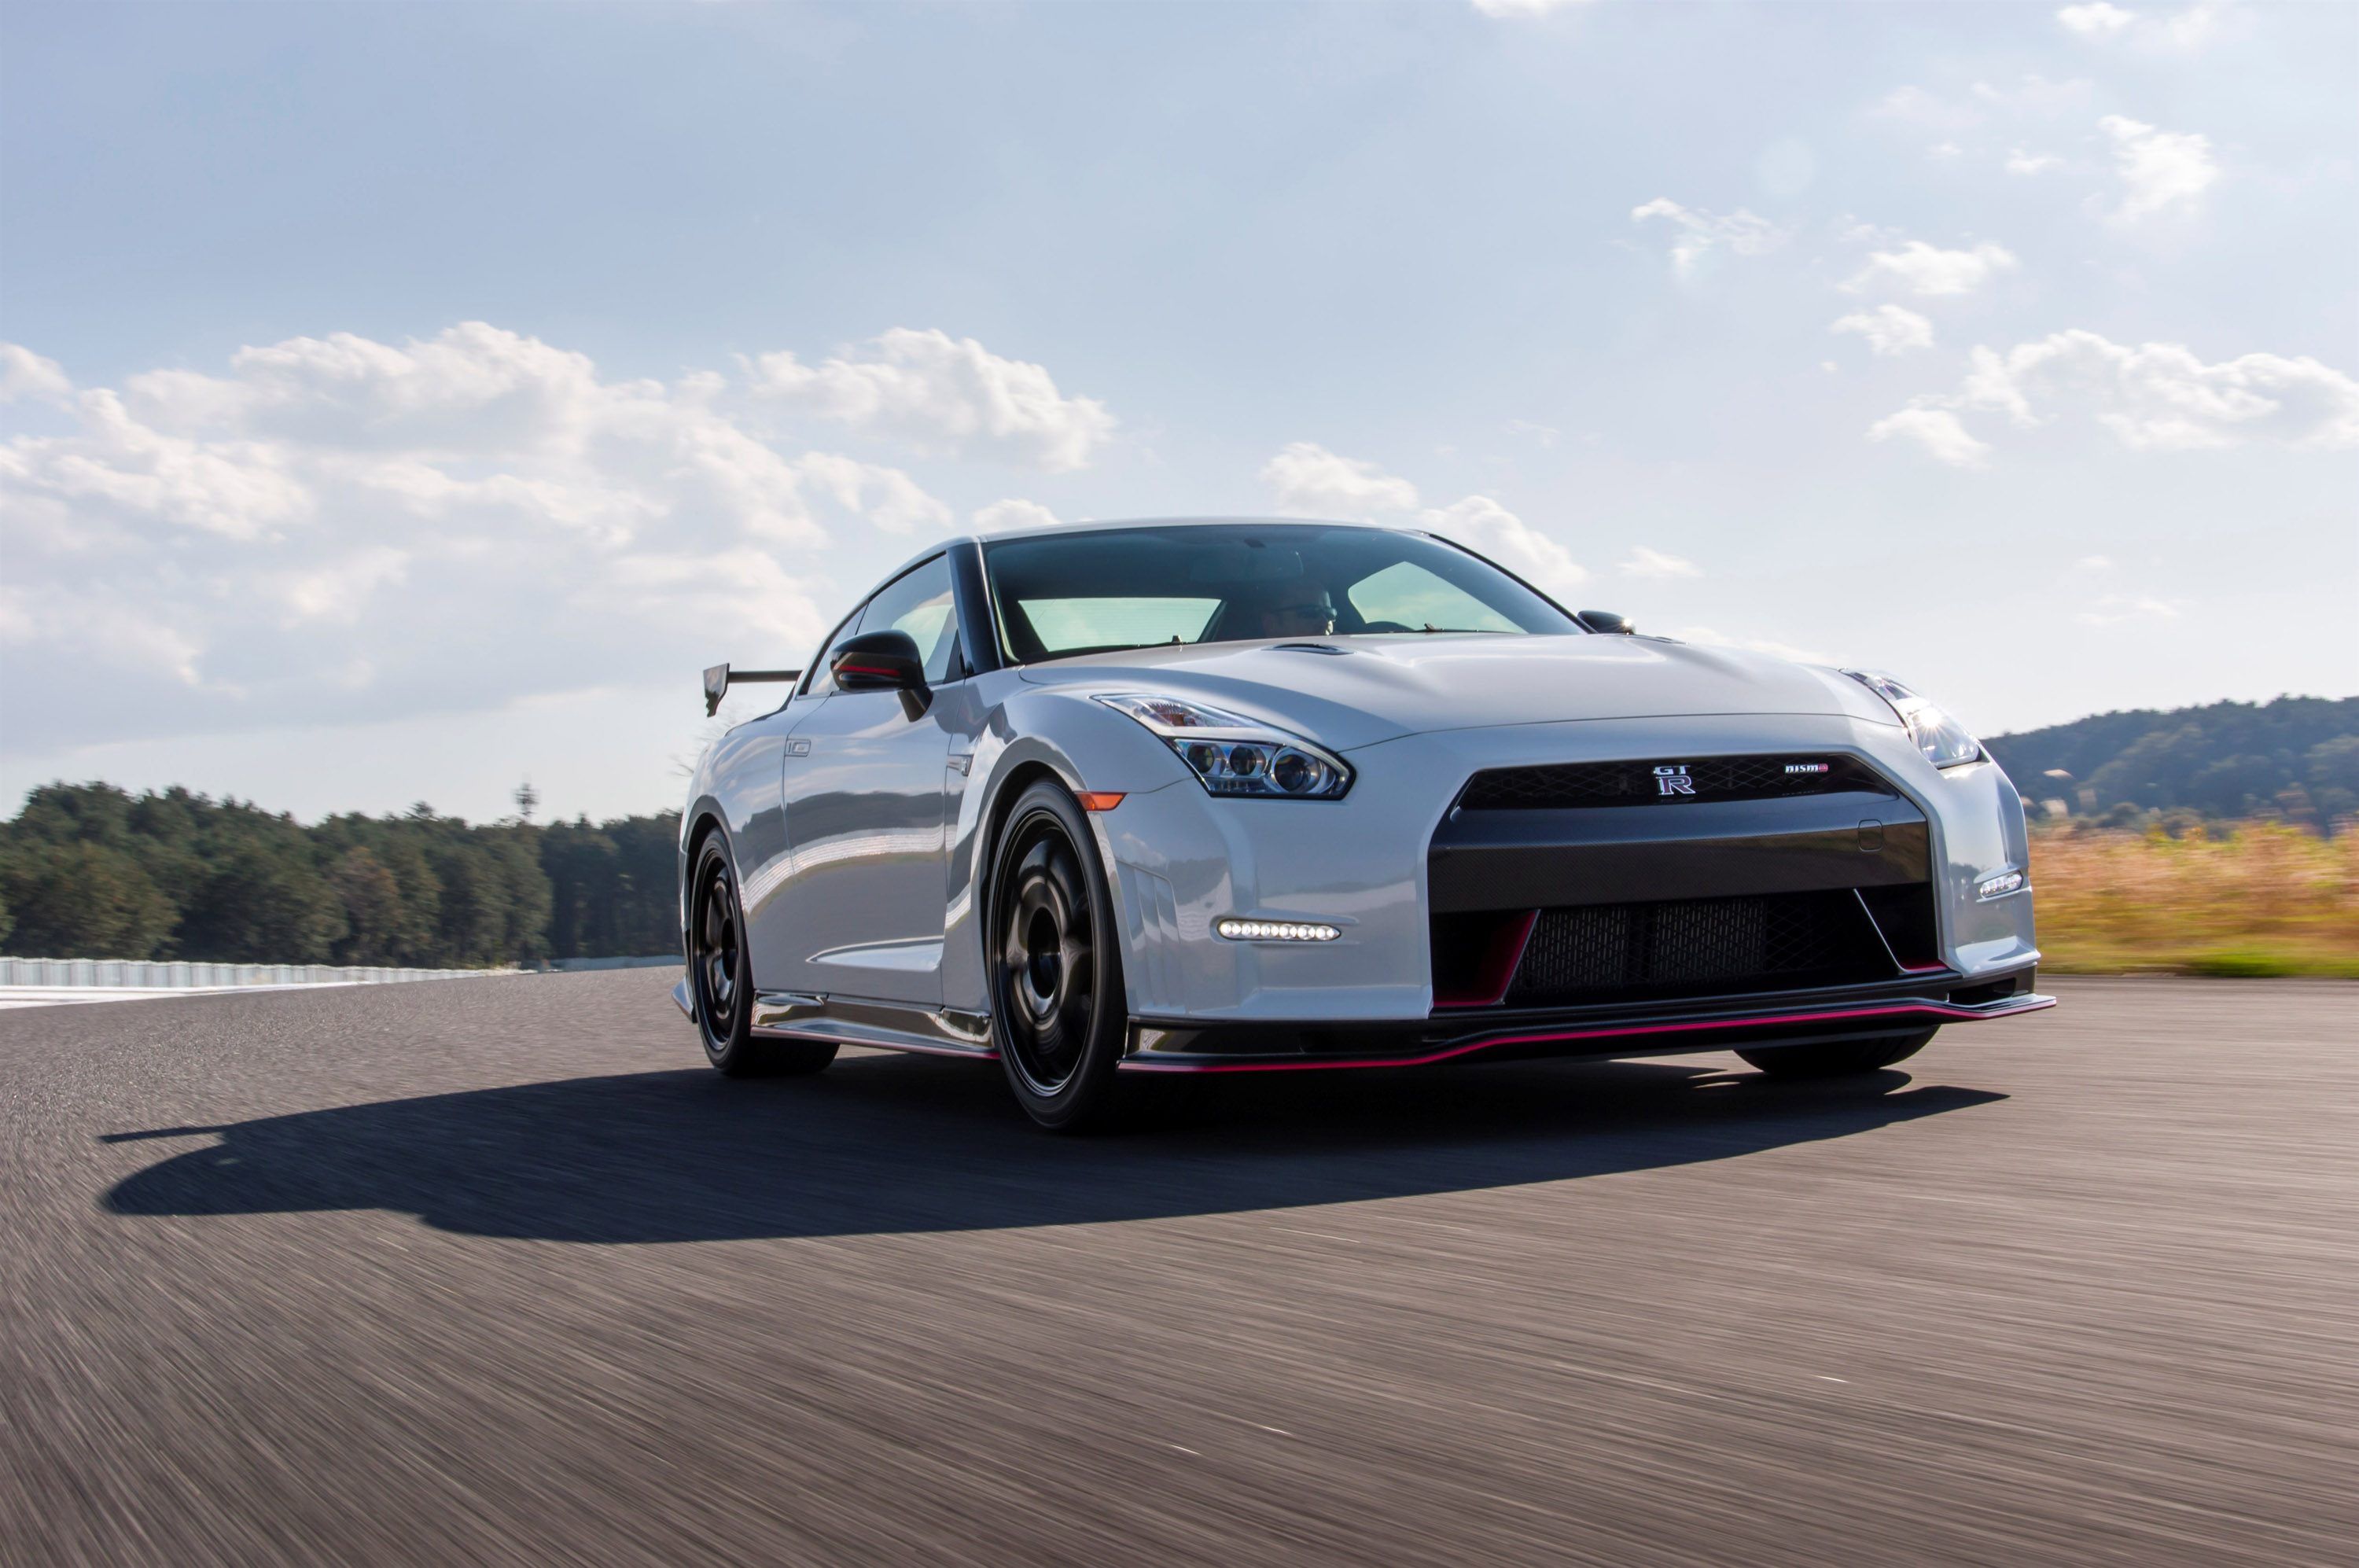 2014 Nissan Gt R Nismo Eu Spec 600hp Performance Specs 5 Of 49